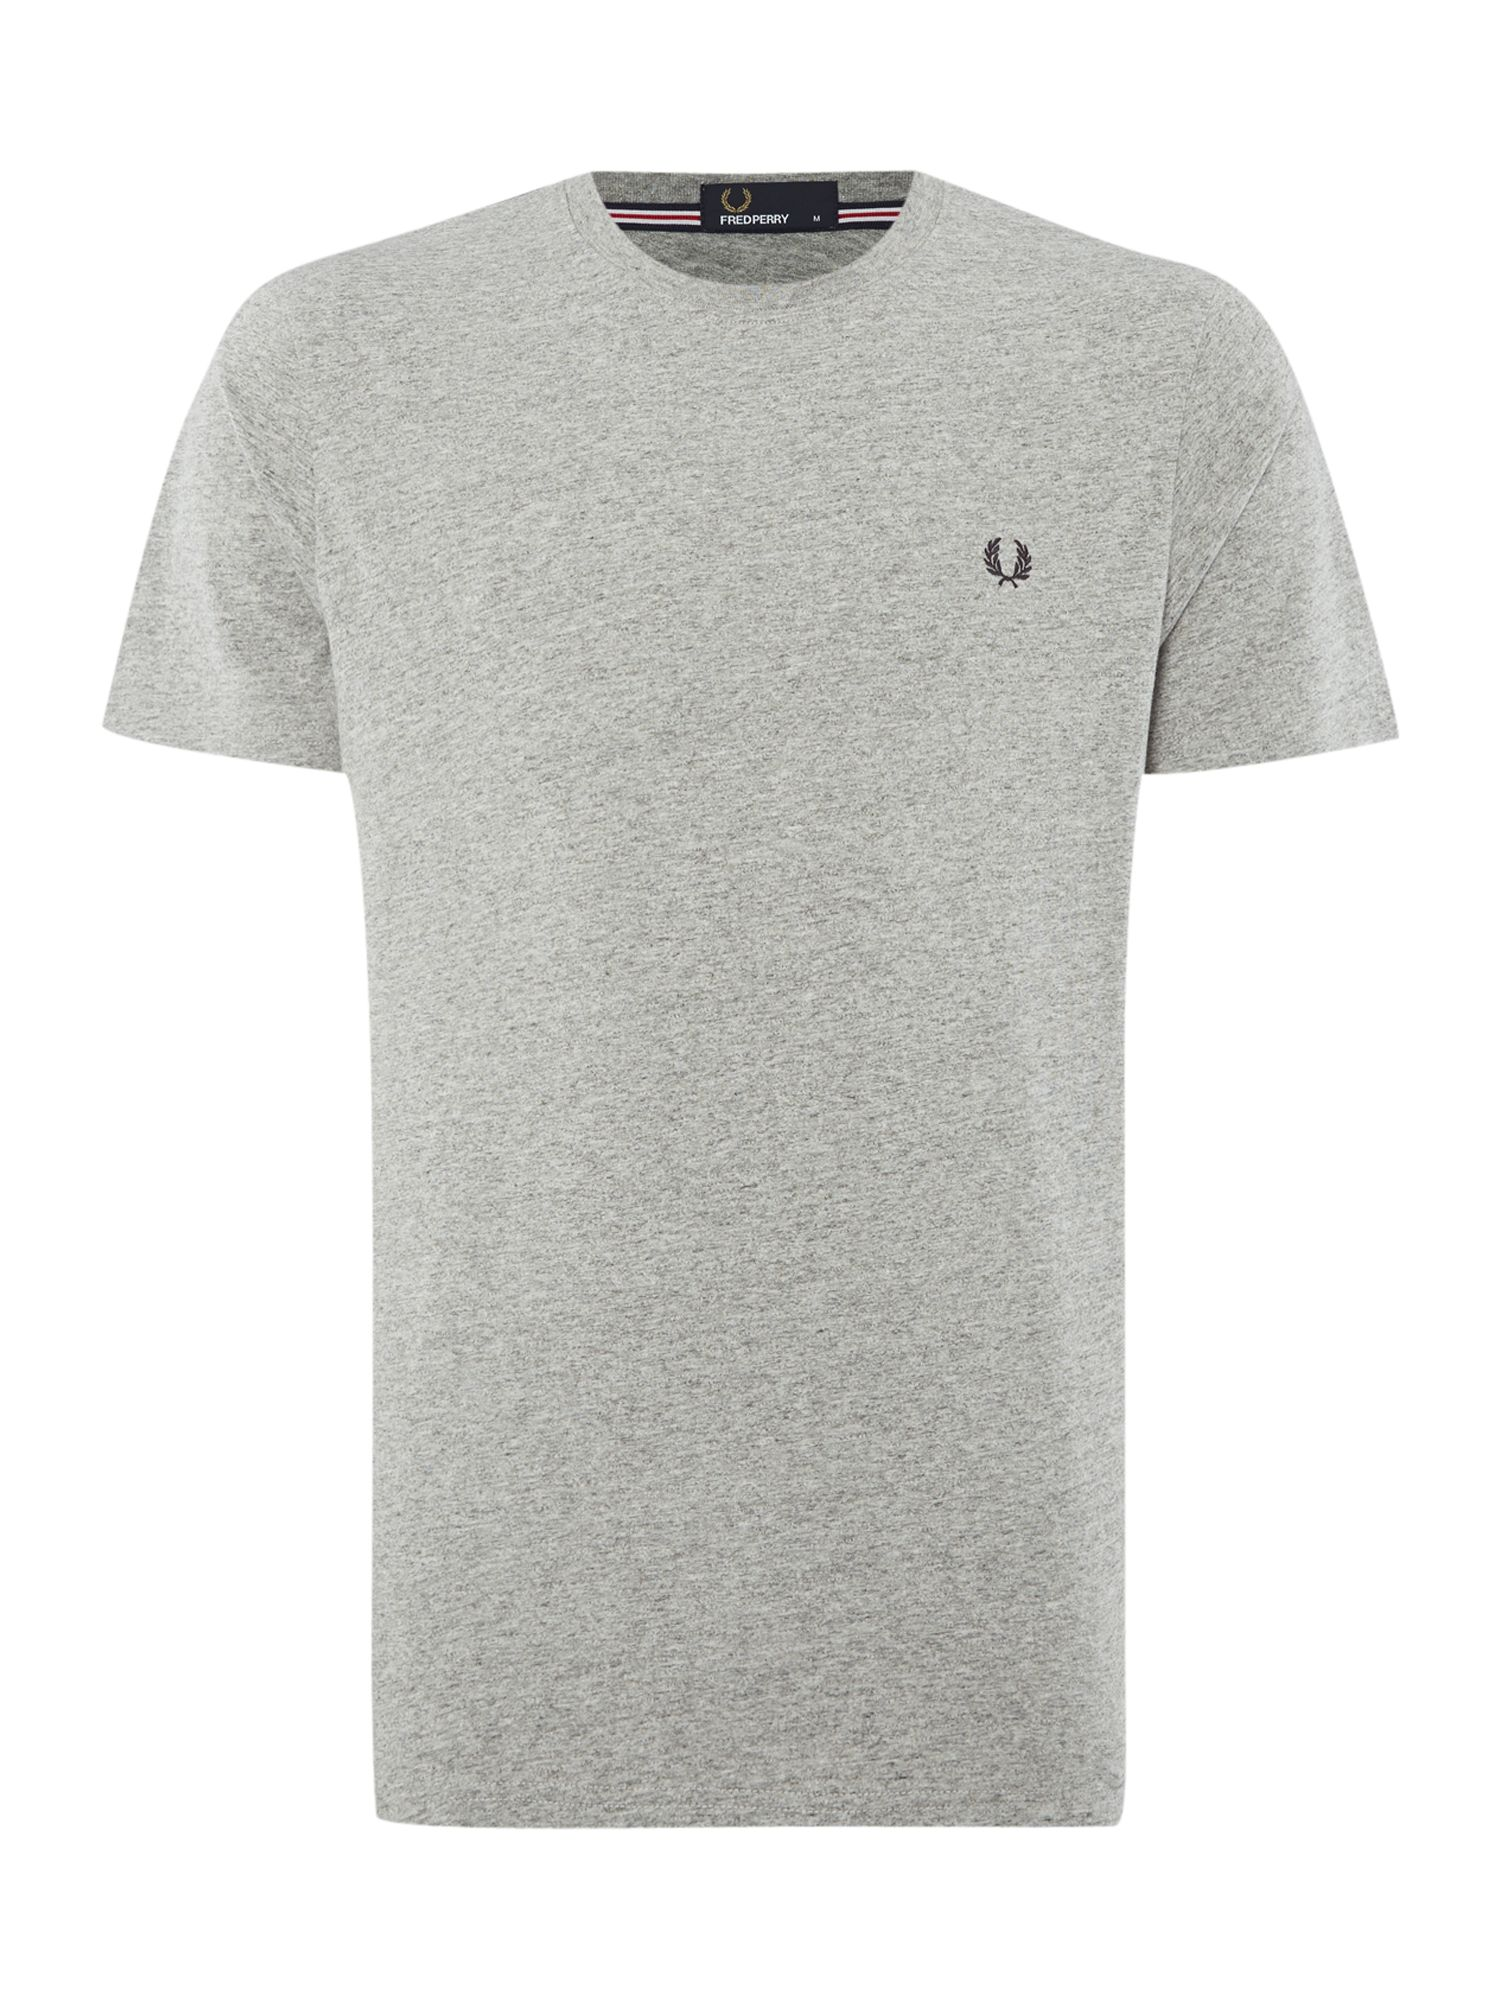 Men's Fred Perry Short-Sleeved T-Shirt, Steel